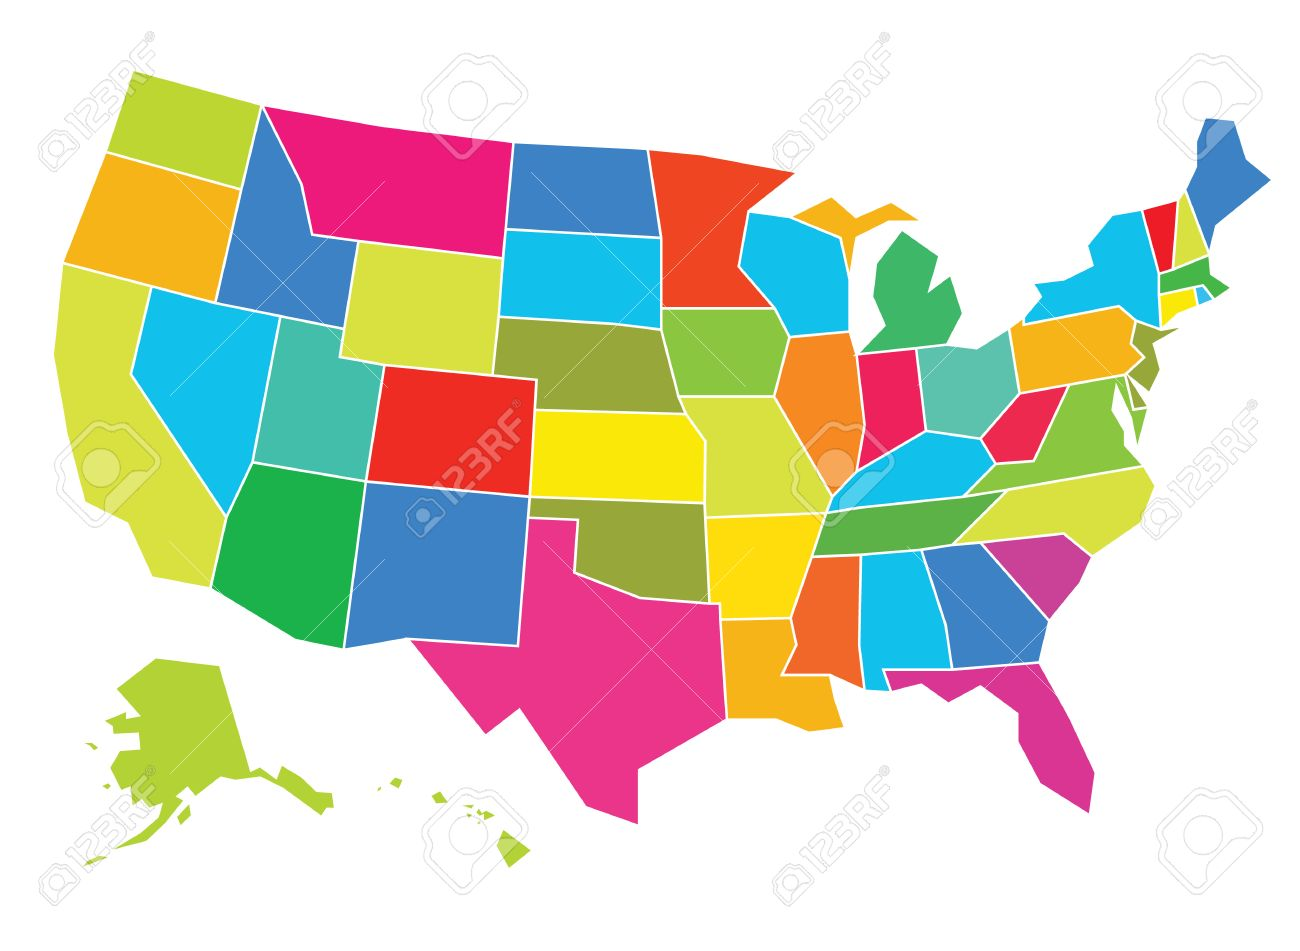 United States Map Vector Download Free Vector Art Stock ZETTWOCH